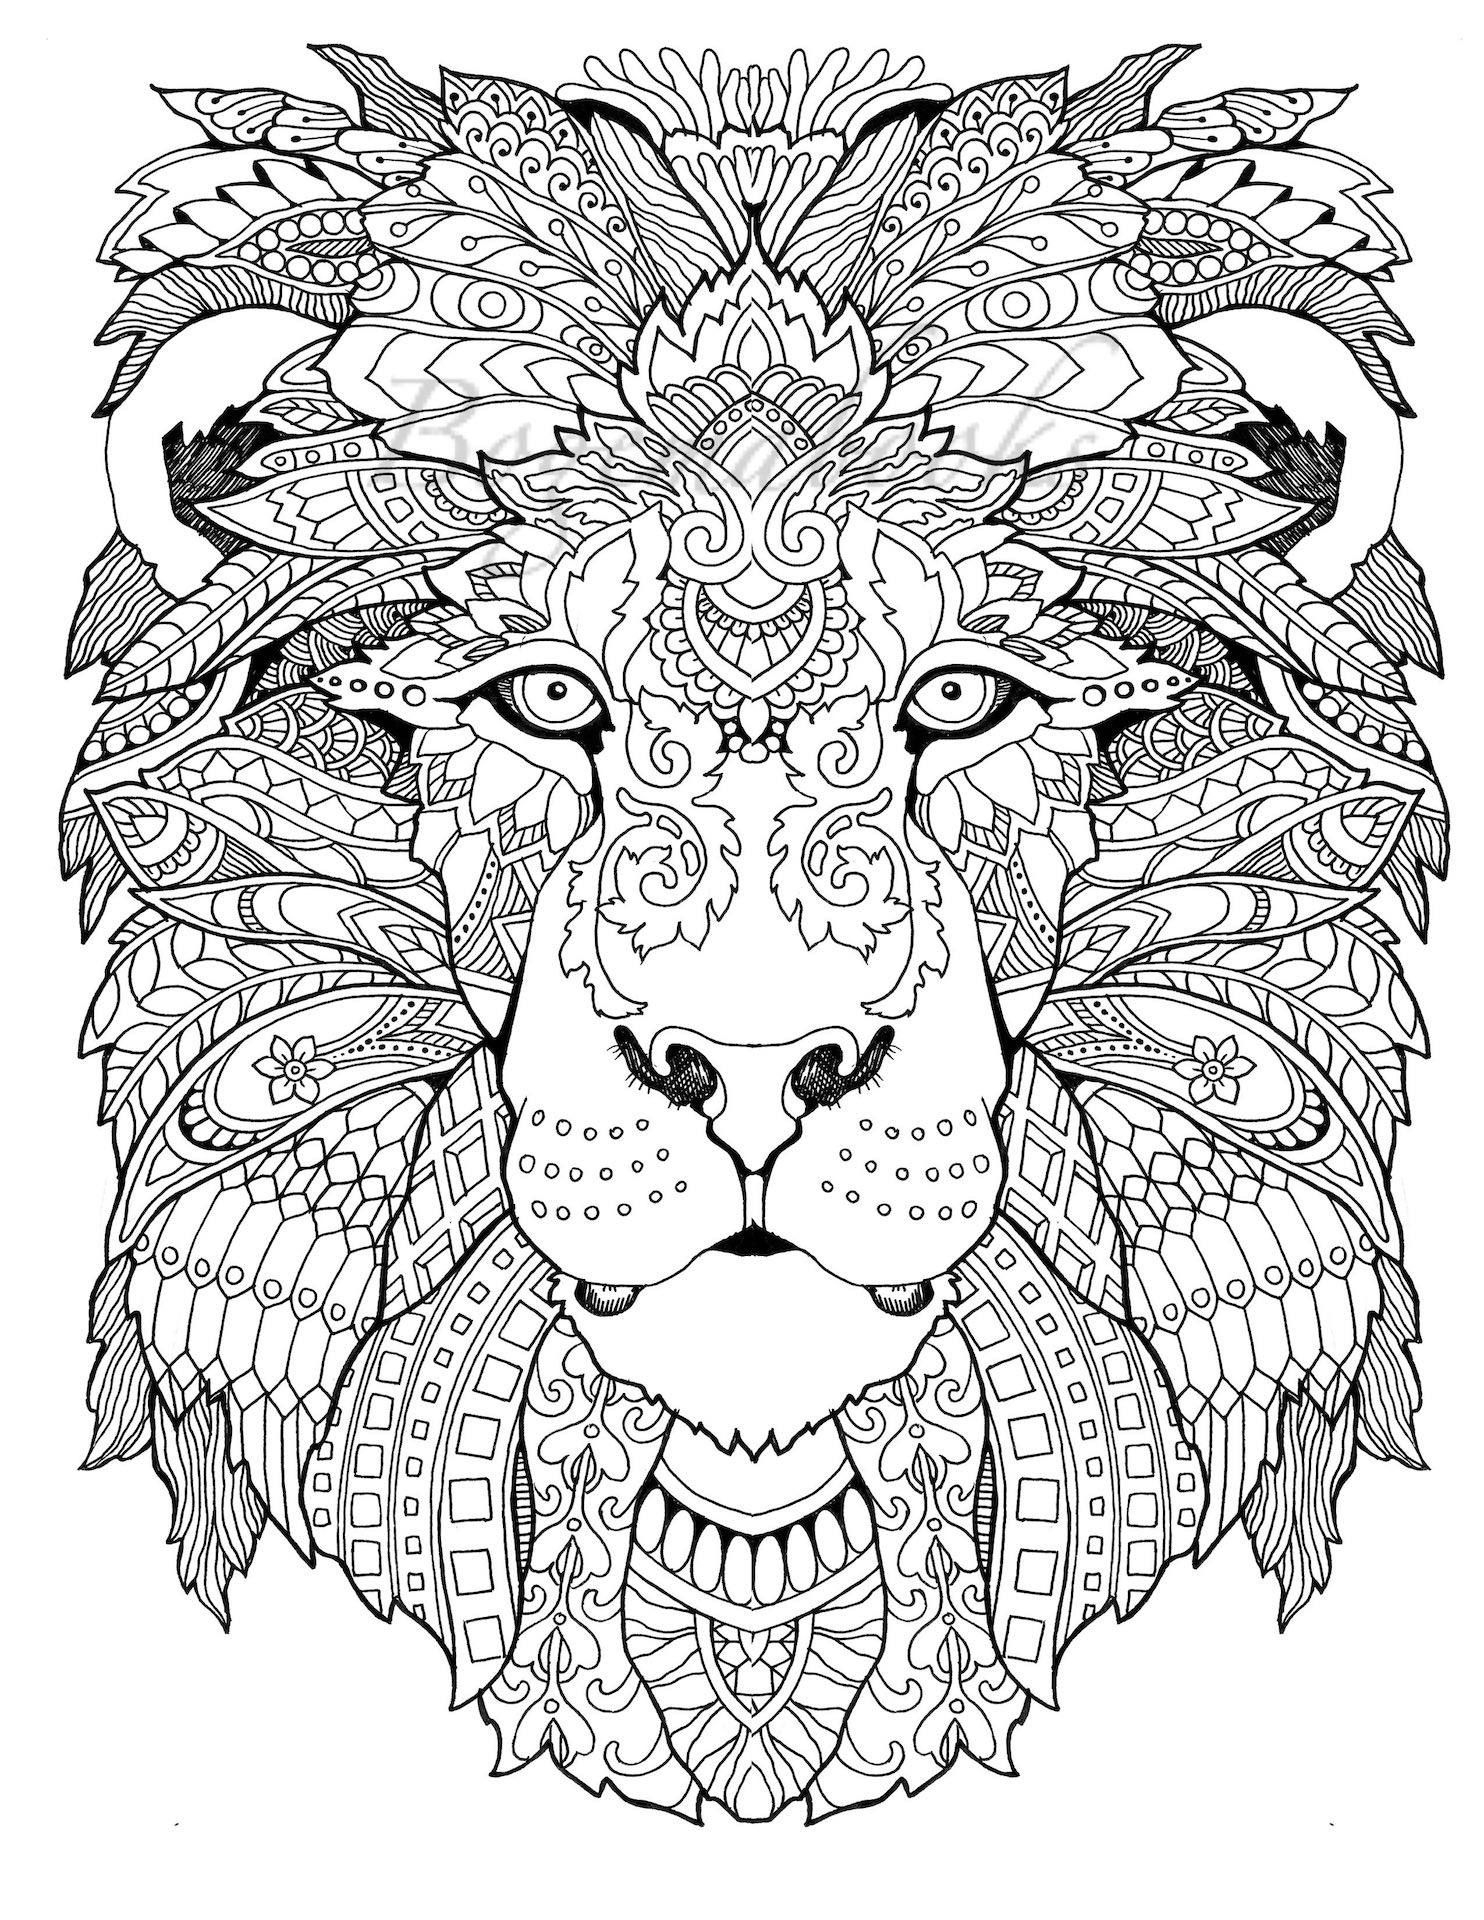 Awesome Animals Adult Coloring Book Coloring Pages Pdf | Awesome - Free Printable Coloring Books Pdf